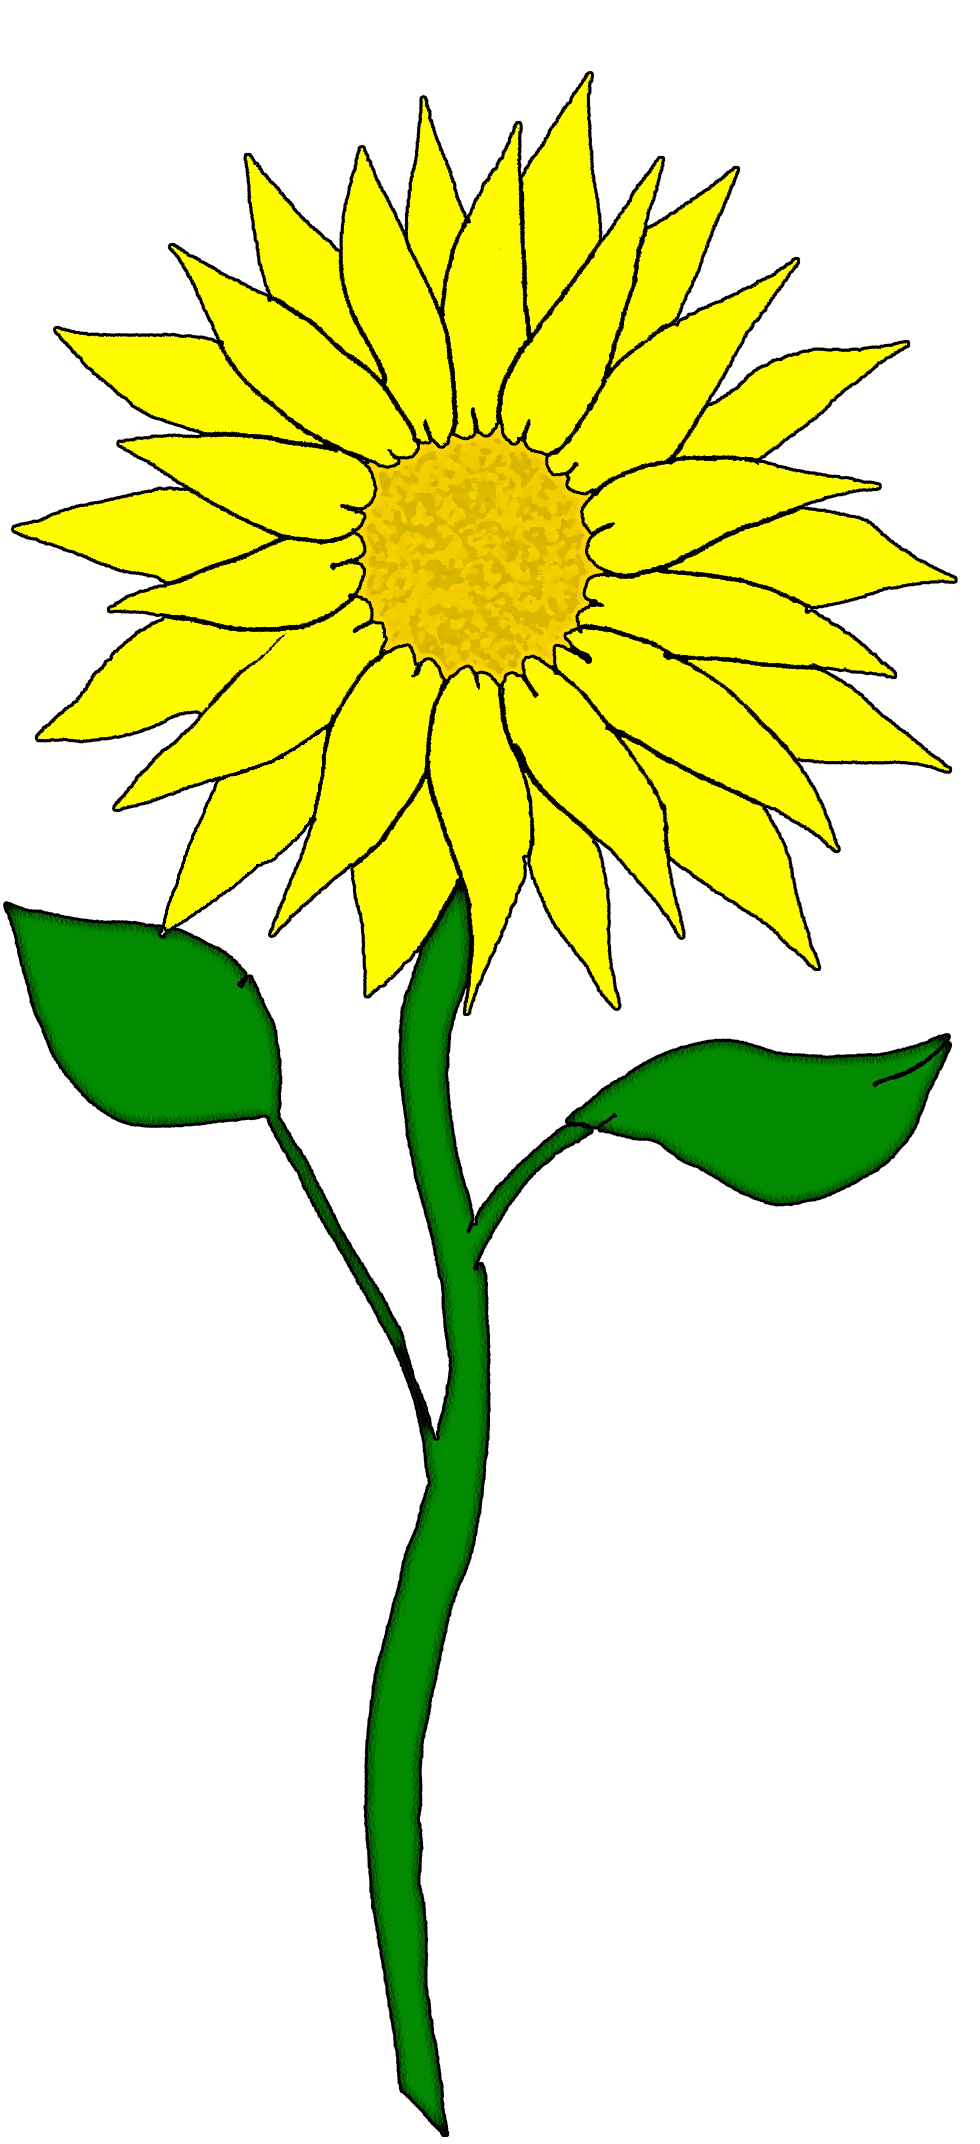 980x2144 Sunflower Border Clipart Free Images